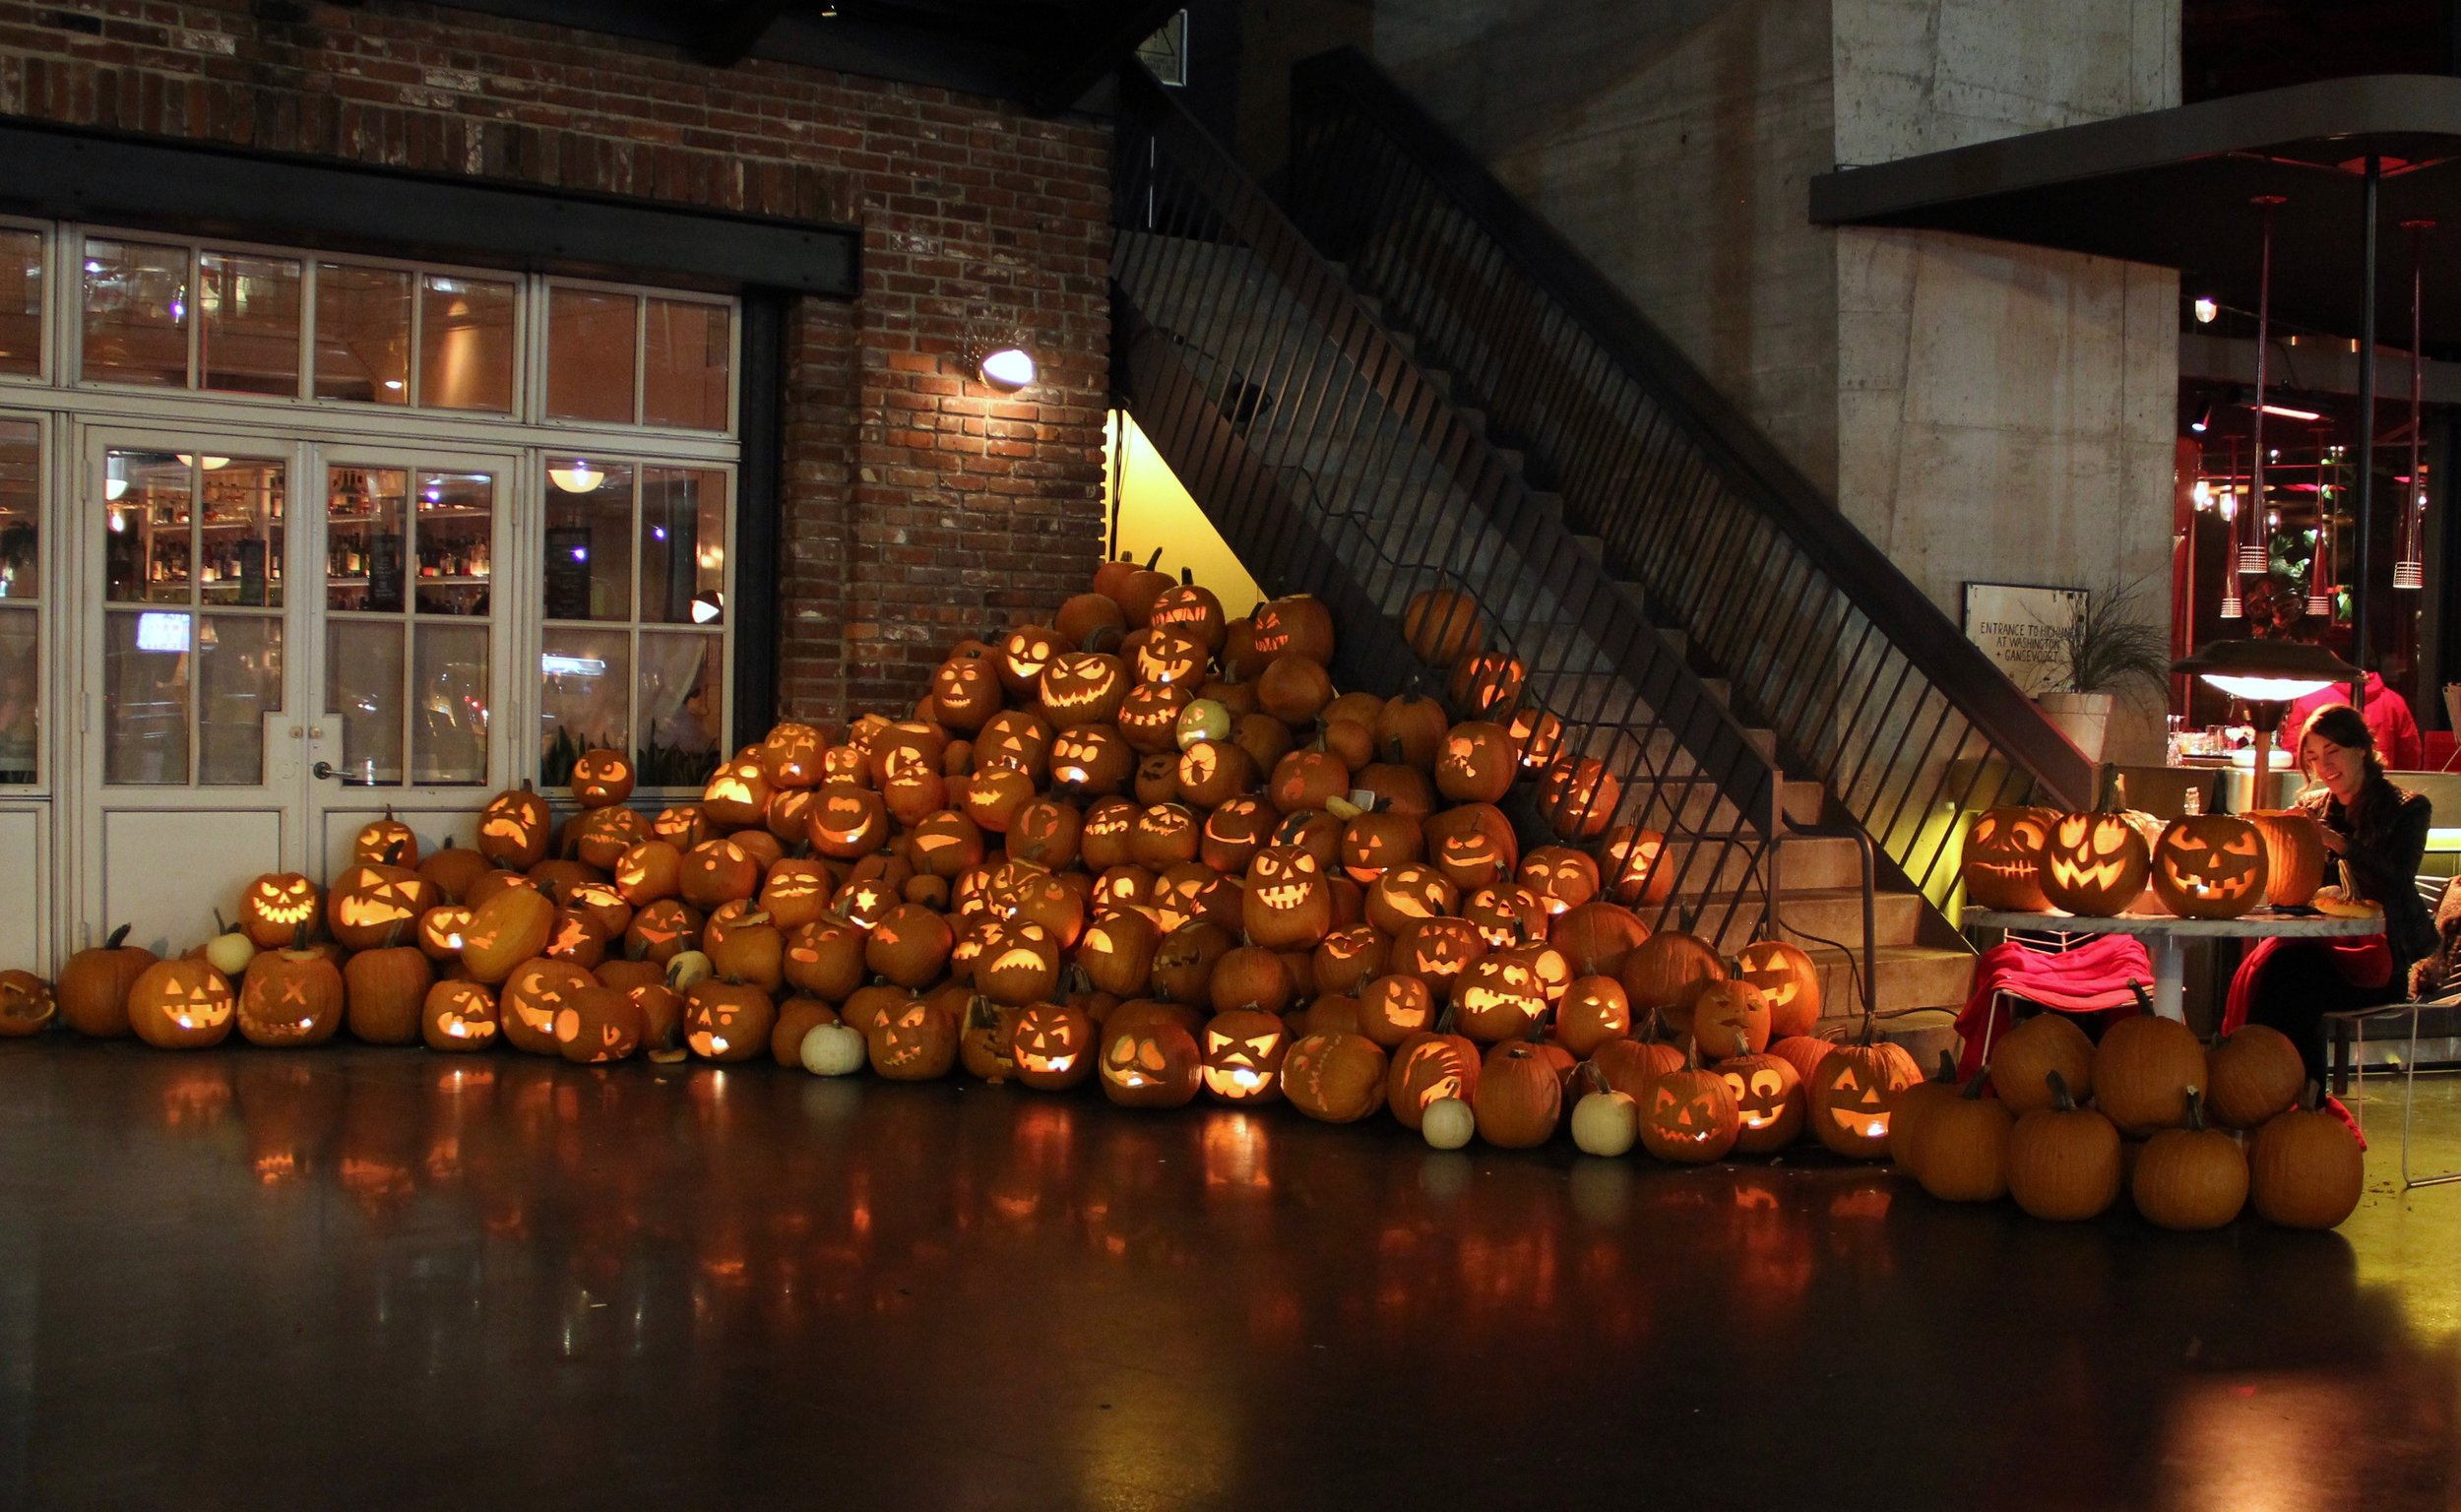 A display featuring over 100 Jack O Lanterns, carved for the Standard Hotel, NYC.  CLASSES, WORKSHOPS, & LIVE EVENTS  Our carvers can work on site (or in our workshop) to create an incredible display of classic Jack O' Lanterns for your event. We also offer Jack O' Lantern classes, workshops, and carving parties, so you and your group can get hands on pumpkin carving tips from a pro. Contact us for info!